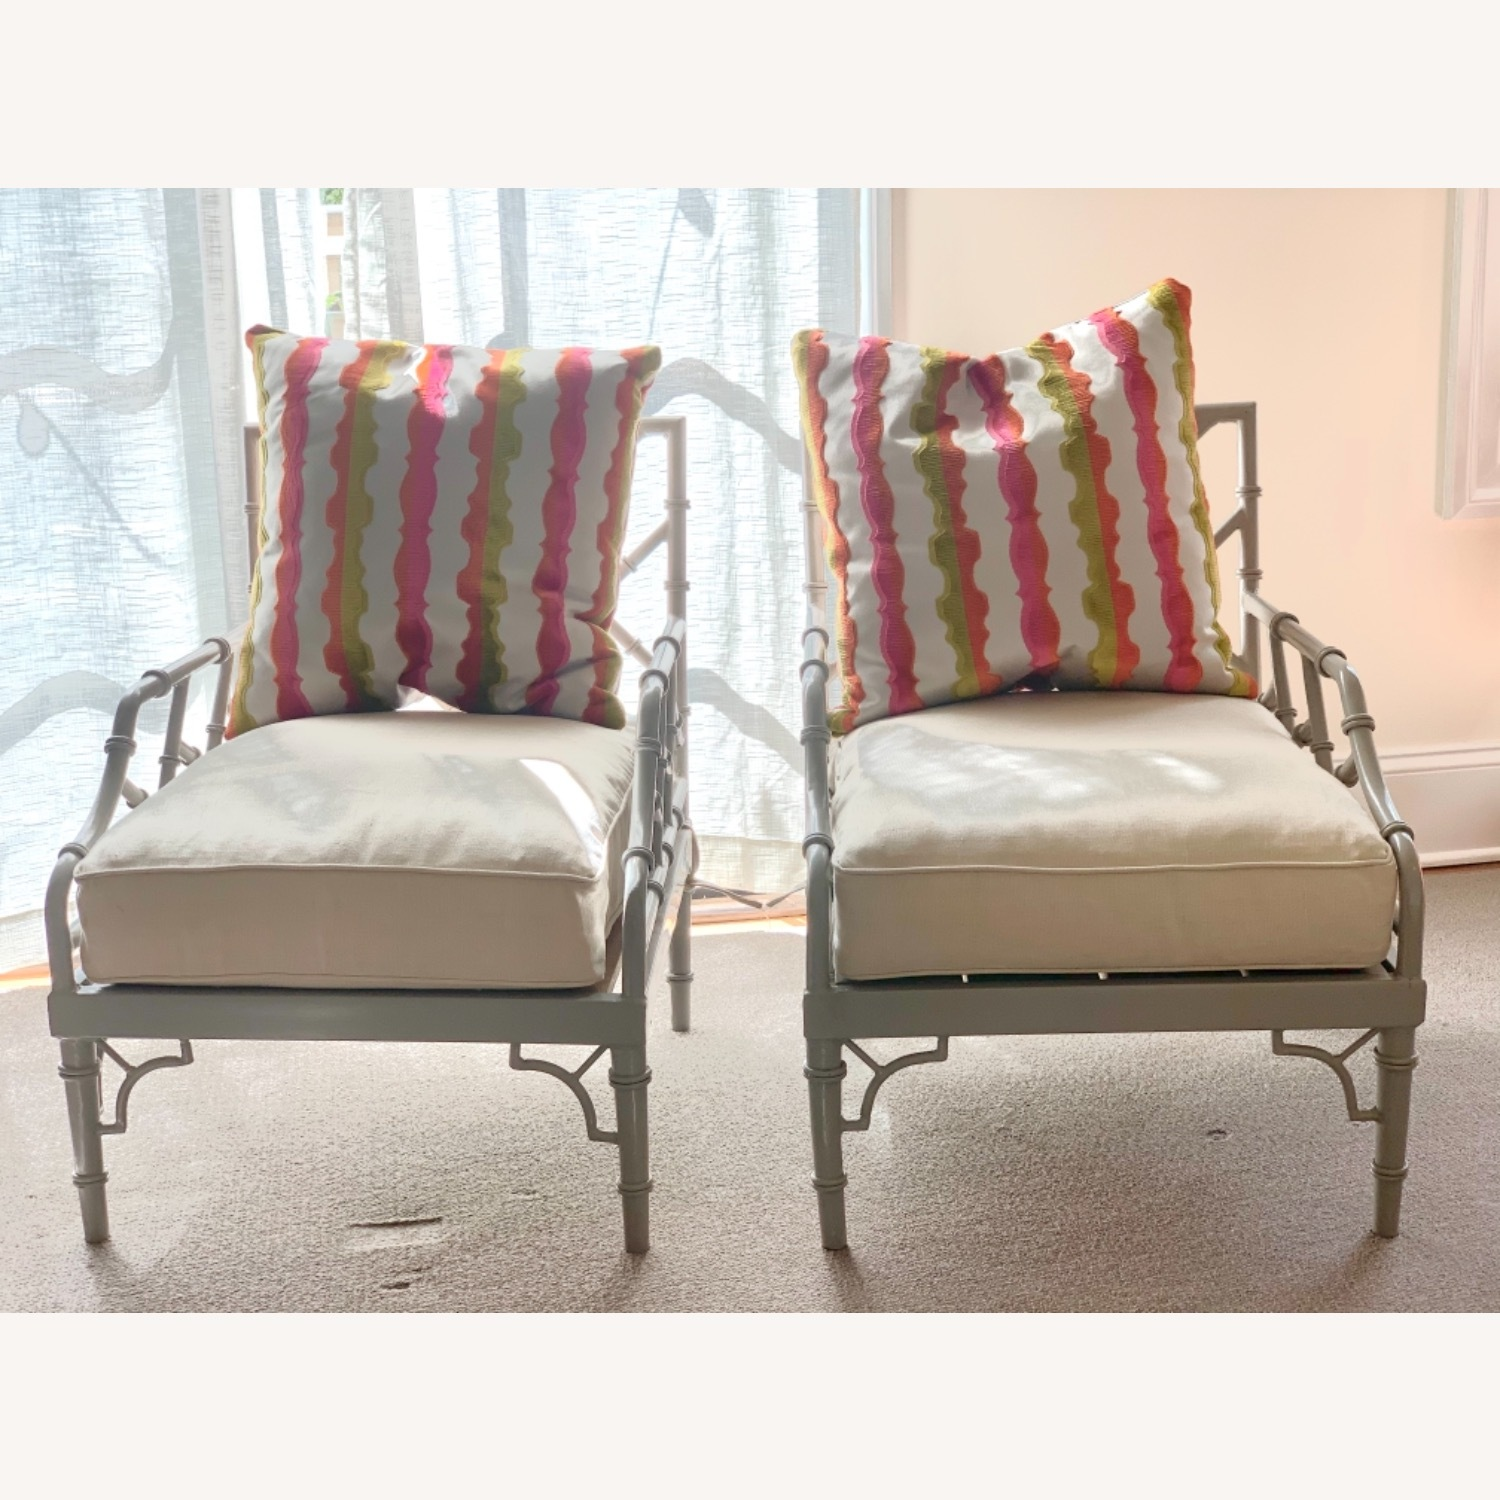 Set of 2 Chinese Chippendale Armchairs - image-8